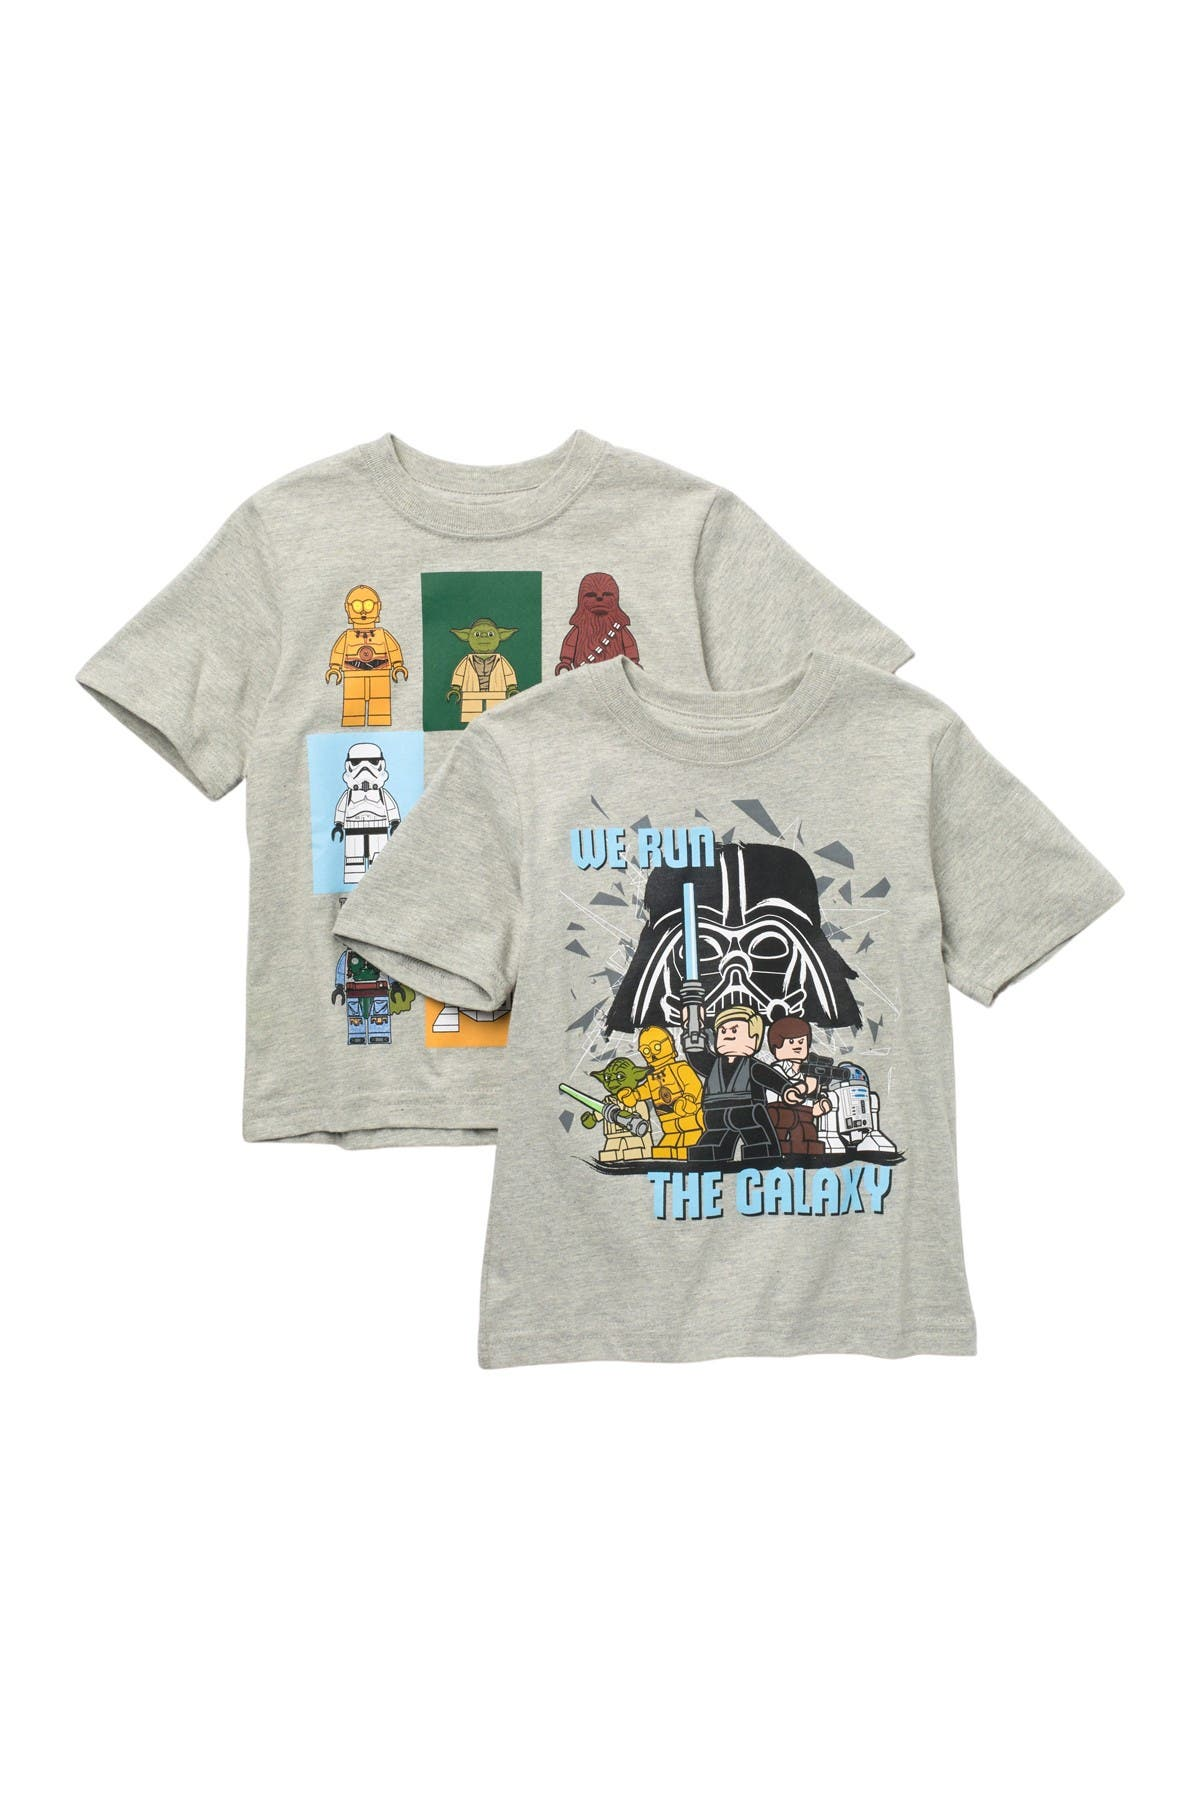 Image of Isaac Morris Lego Star Wars T-Shirt - Pack of 2